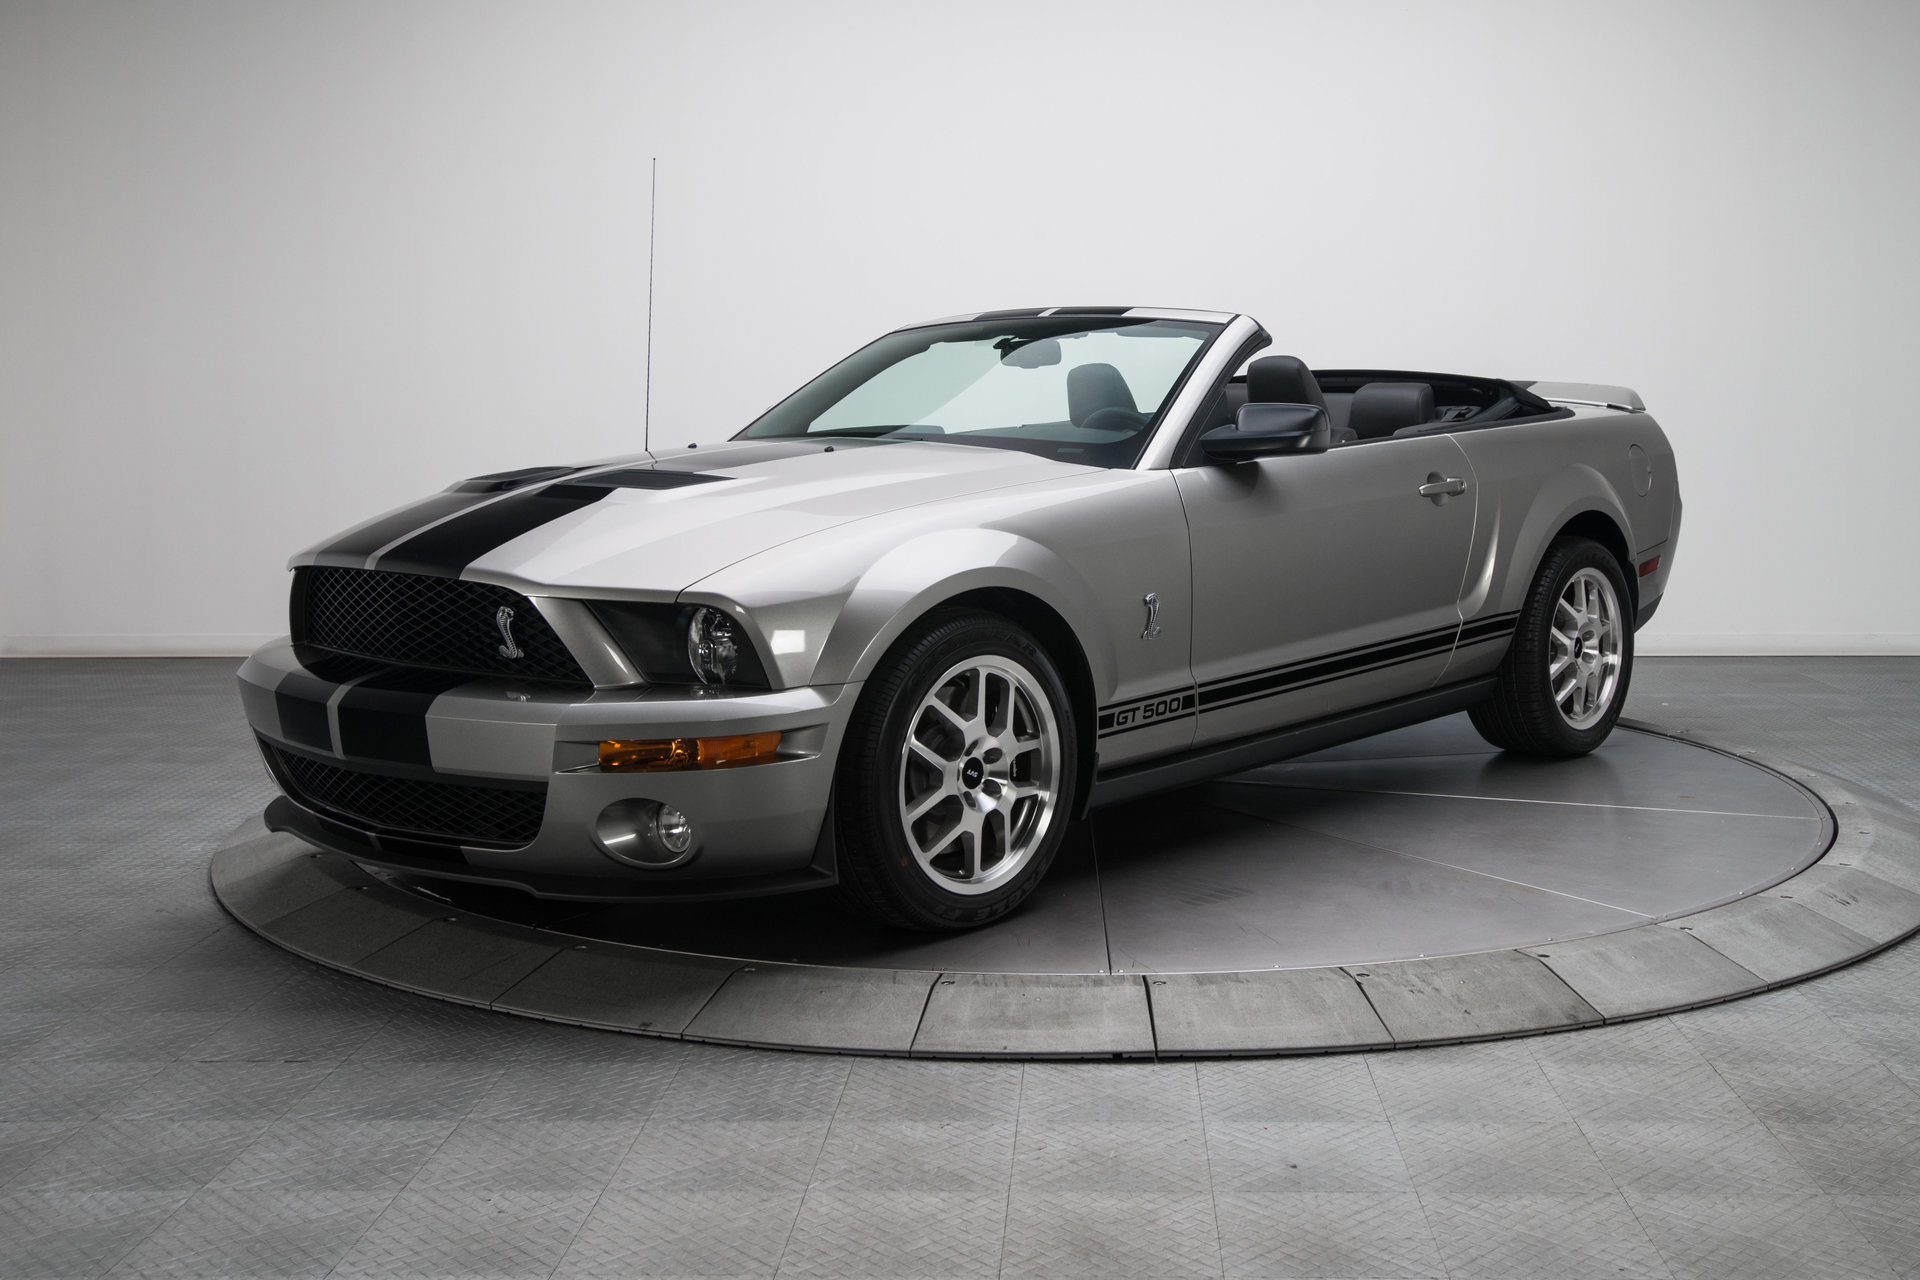 2008 ford mustang shelby gt500 for sale 59796 mcg. Black Bedroom Furniture Sets. Home Design Ideas